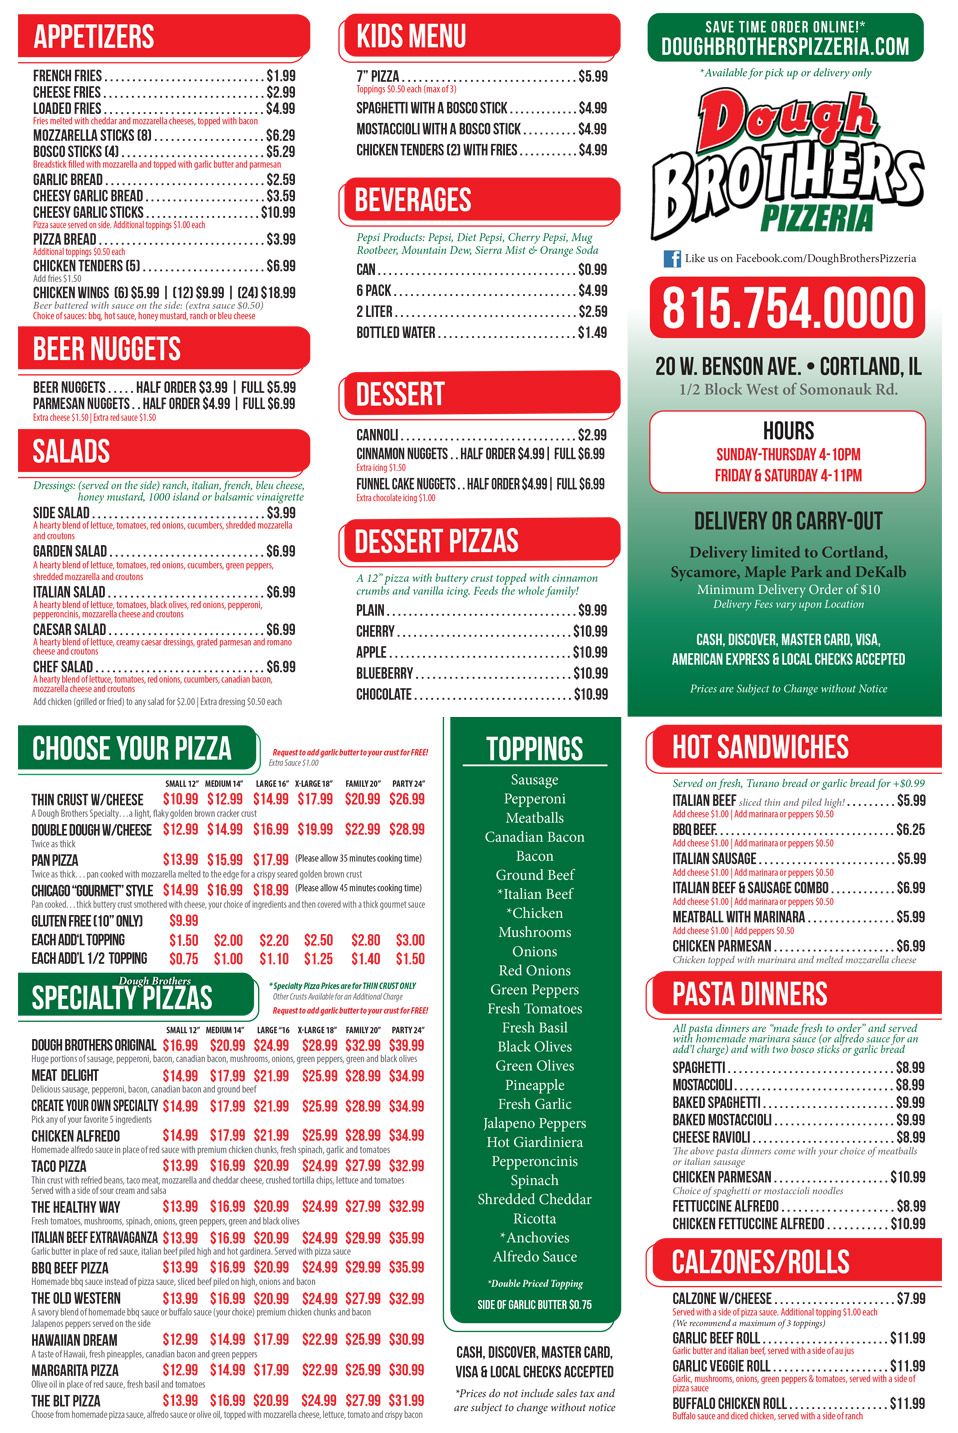 Dough Brothers Pizzeria Complete Menu and Kids Menu with Prices